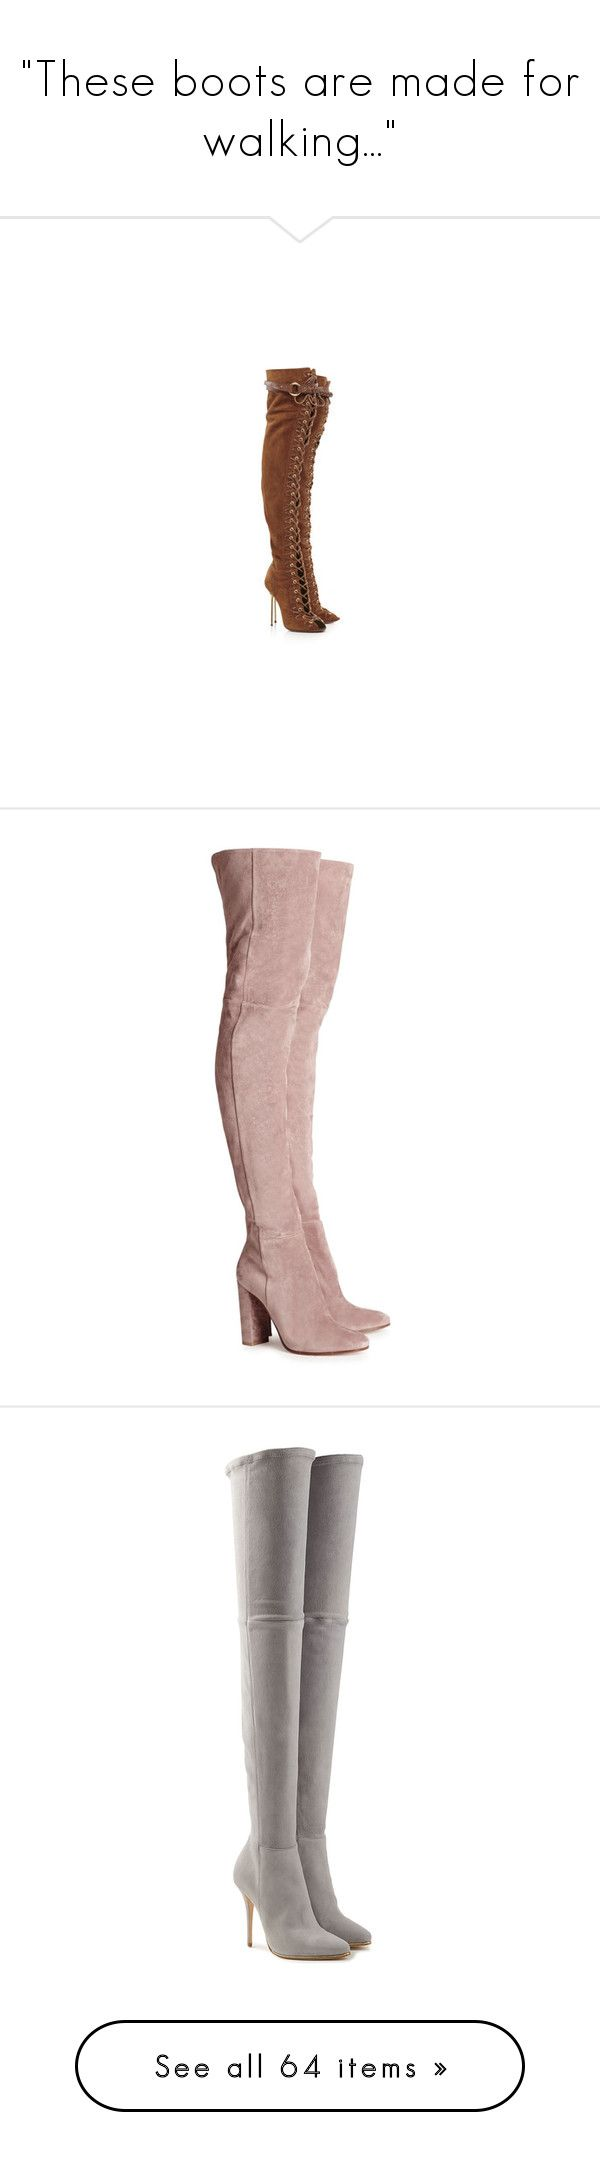 """""""These boots are made for walking..."""" by mspoisonivey ❤ liked on Polyvore featuring shoes, boots, heels, zapatos, over the knee lace up boots, over-the-knee suede boots, brown suede over the knee boots, brown heeled boots, brown over the knee boots and botas"""